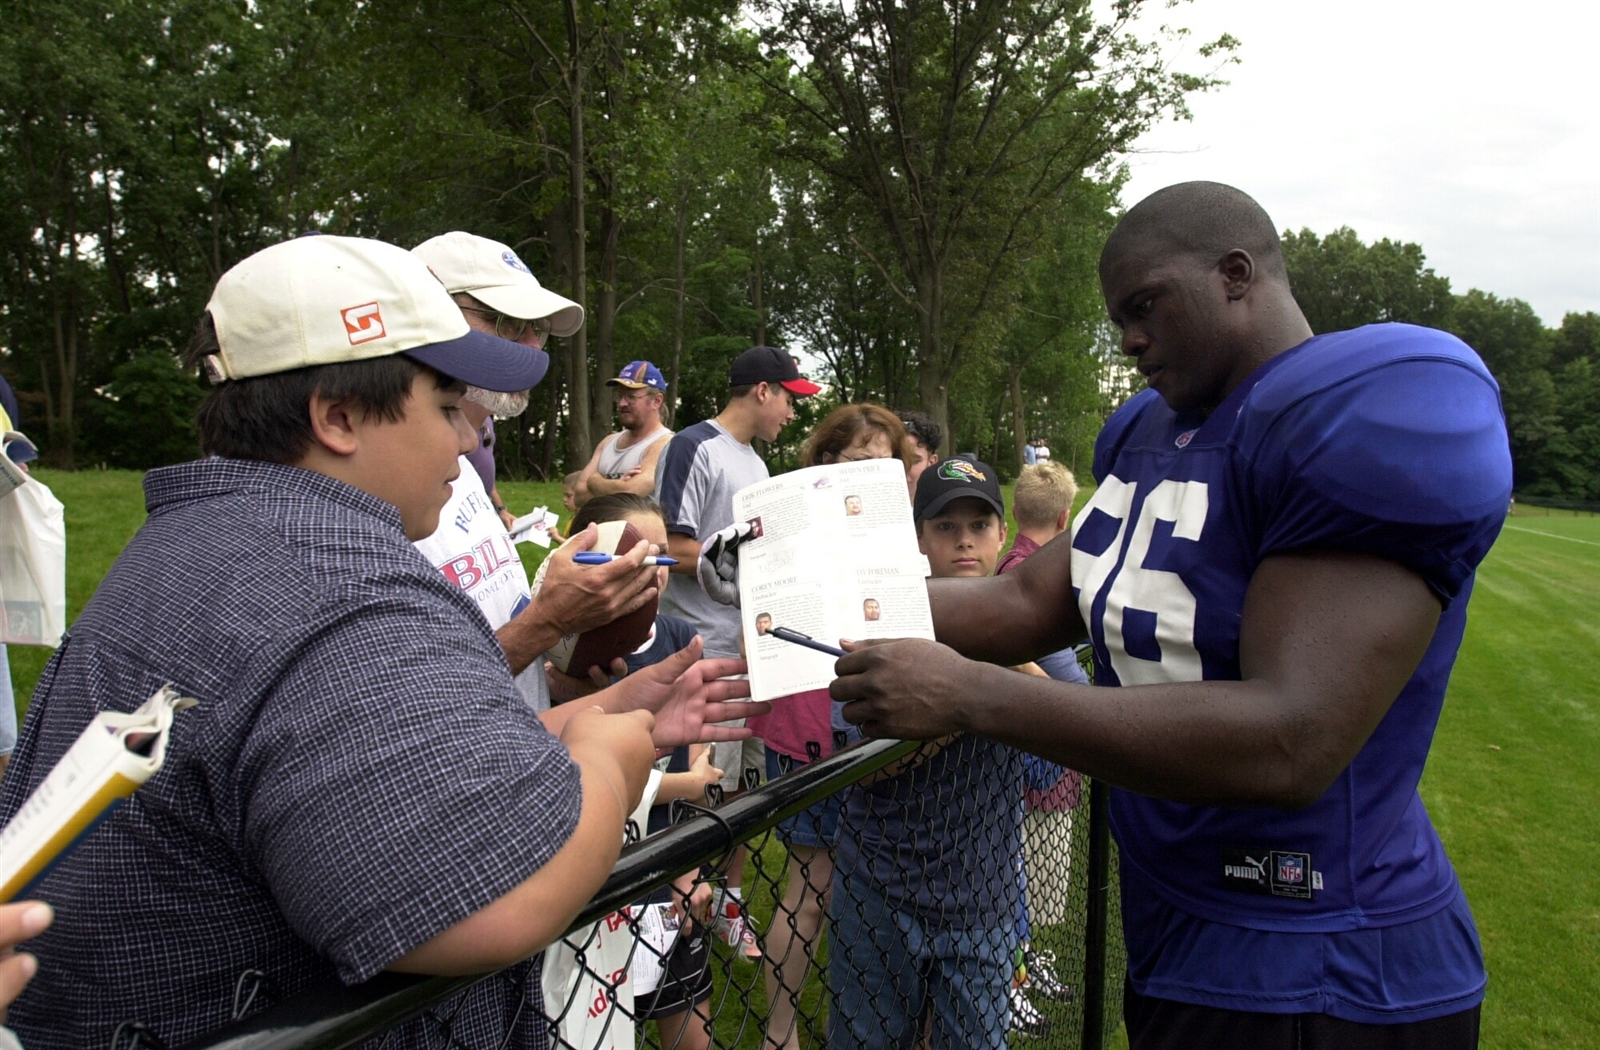 Erik Flowers -- Defensive end; drafted 26th overall in 2000 out of Arizona State. Erik Flowers is seen signing autographs after his first day of Training Camp on July 24, 2000.